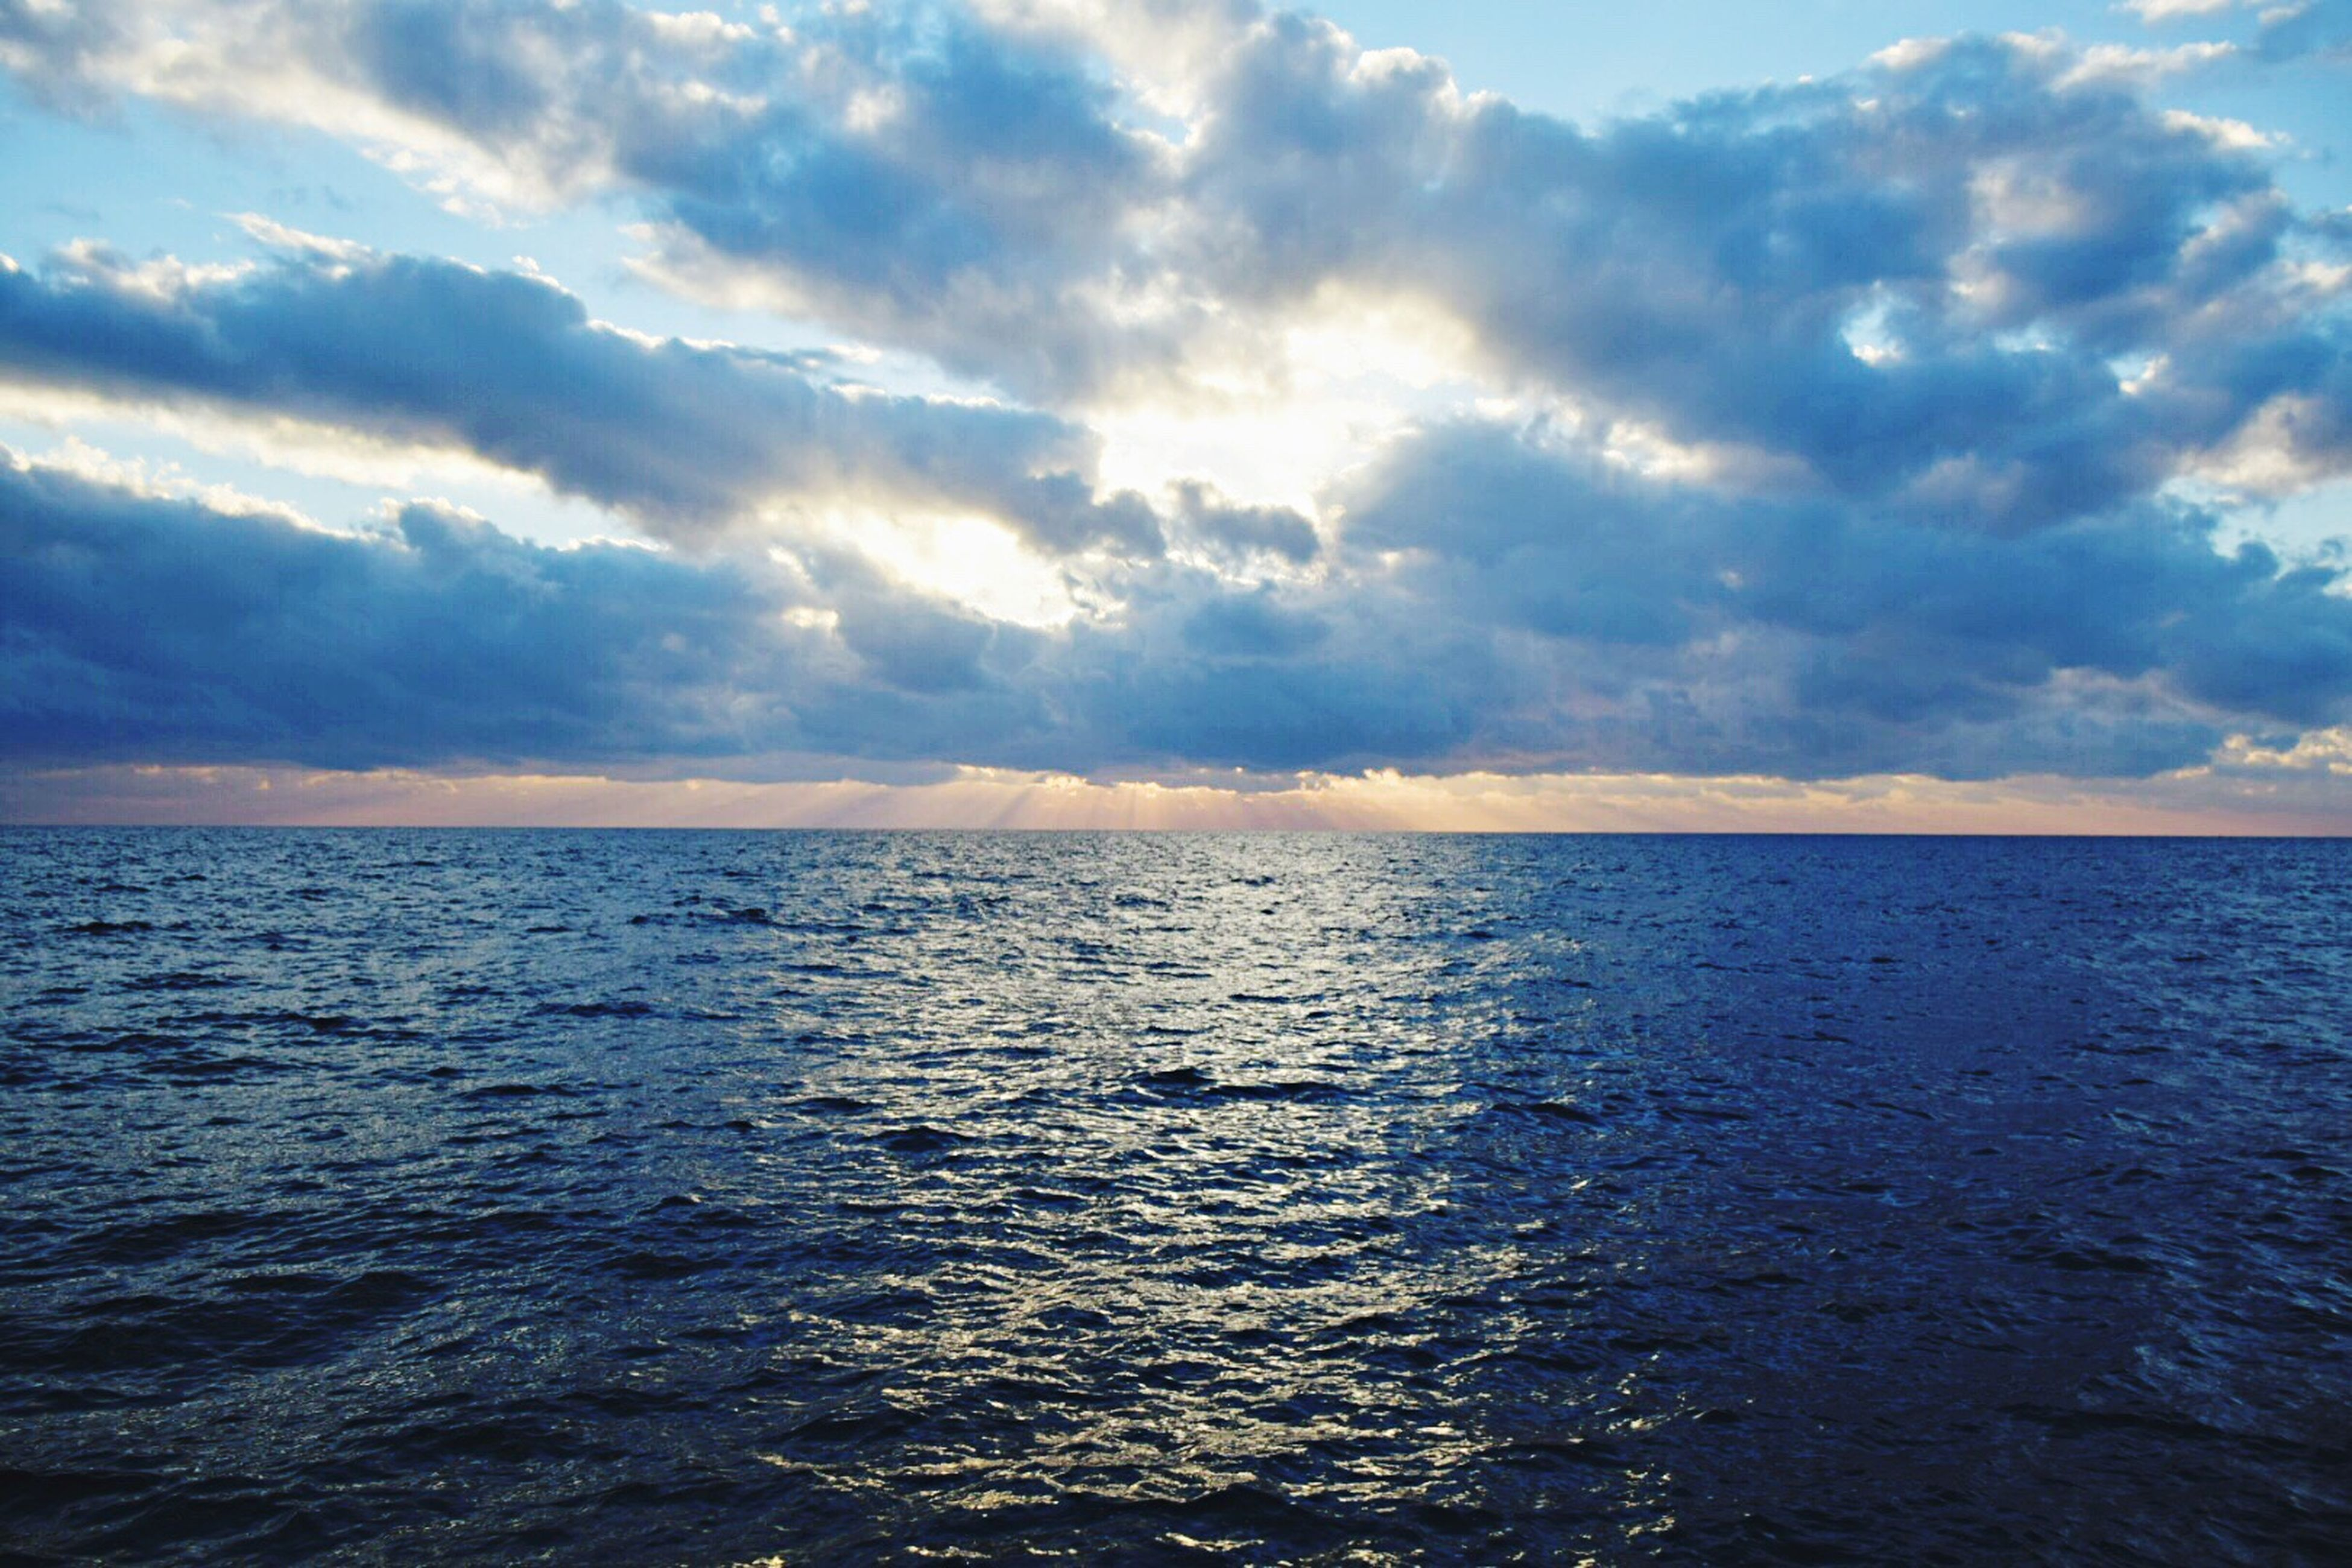 sea, beauty in nature, reflection, scenics, cloud - sky, sunset, horizon over water, water, sky, nature, no people, outdoors, dramatic sky, tranquility, day